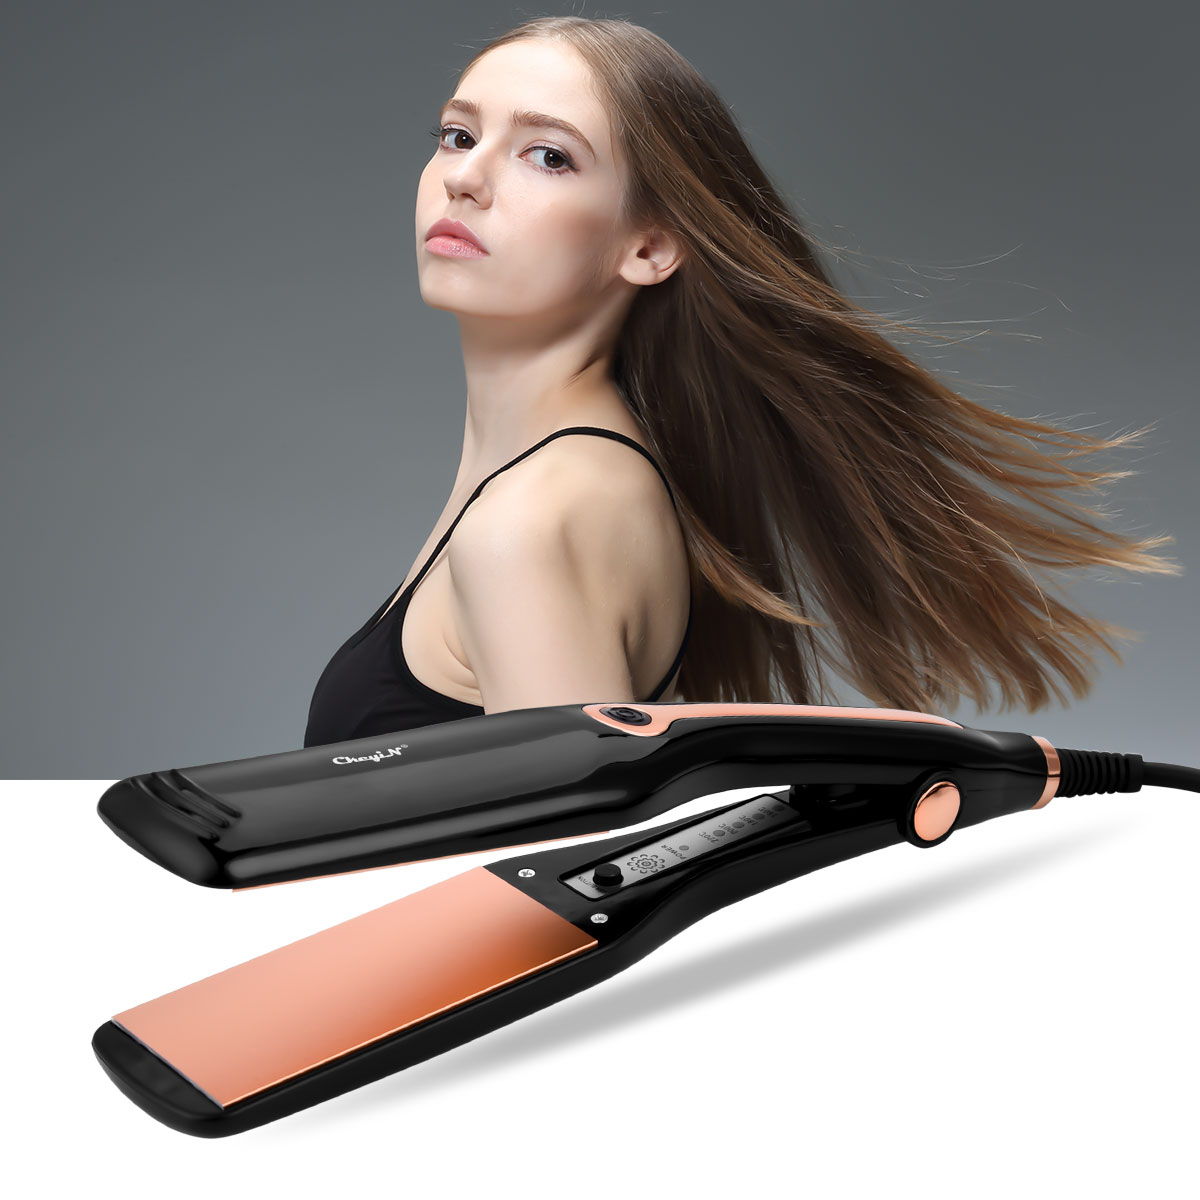 2 In 1 Wide Plate Hair Straightene Iron Curling Temperature Adjustment Ceramic  Straightening  Iron Hair Styling Tool